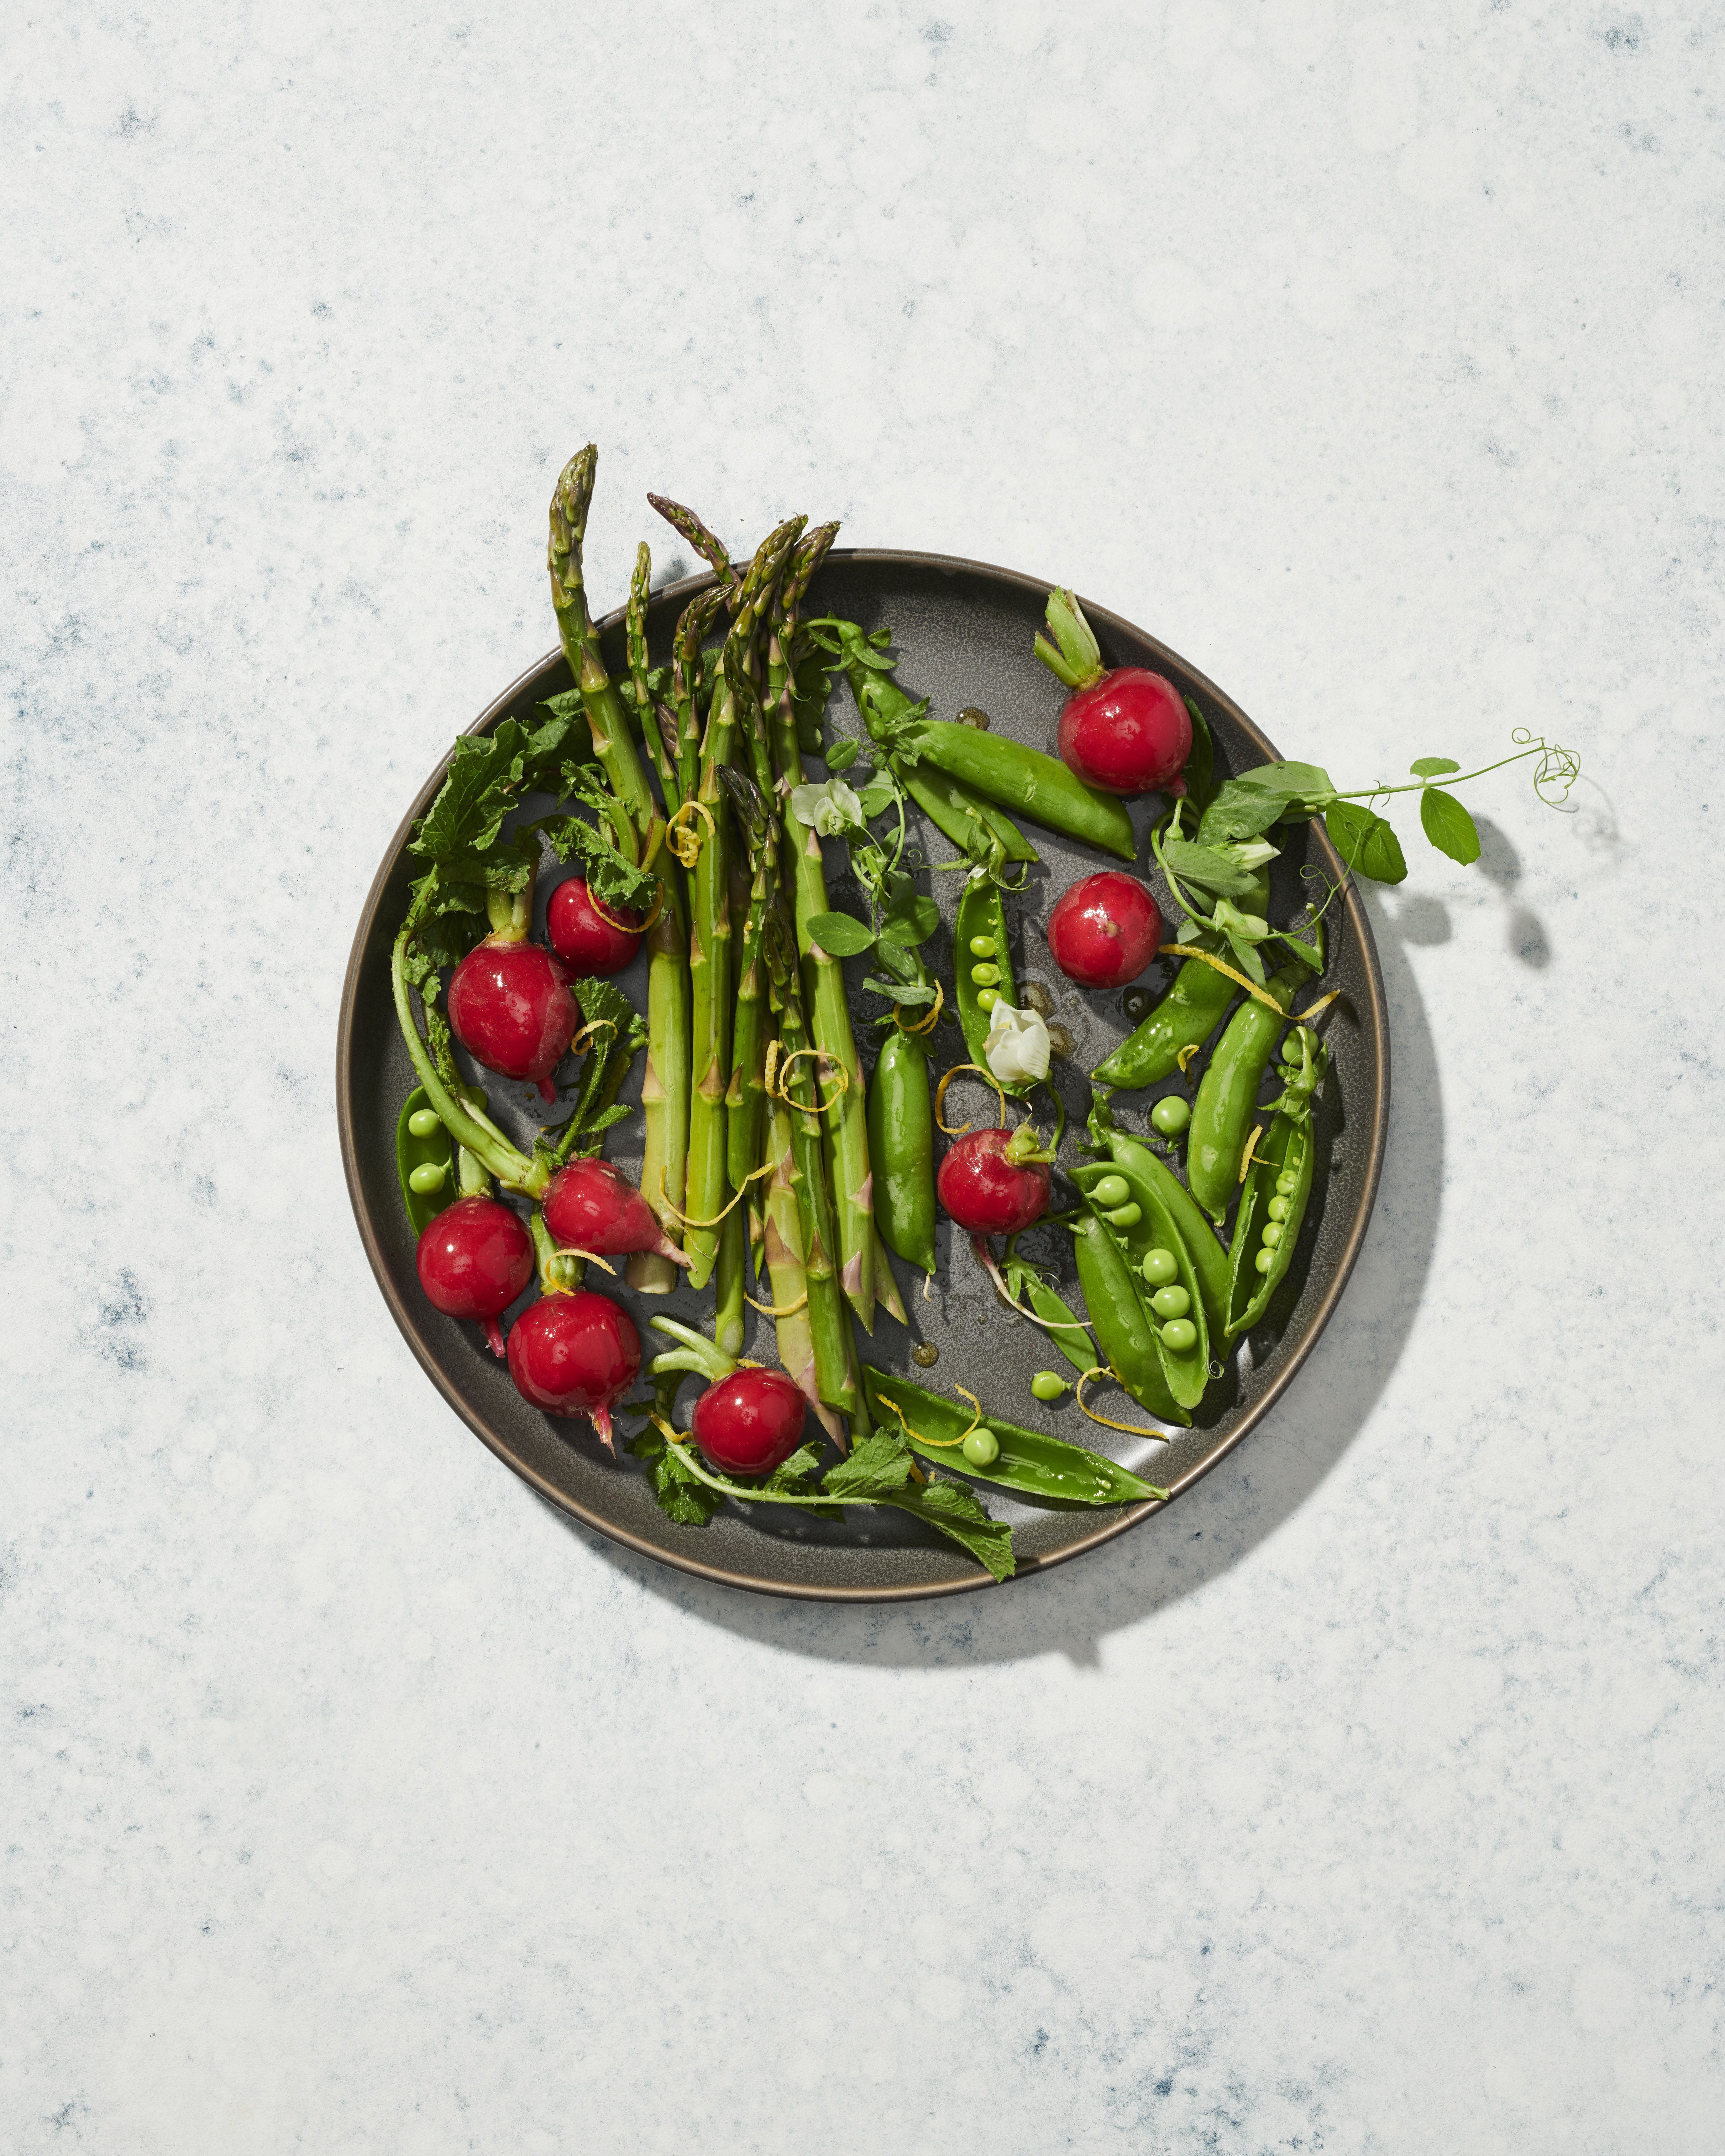 Snap Peas Radishes And Asparagus Sweetgreen Snap Peas Radishes Asparagus [ 6880 x 5504 Pixel ]